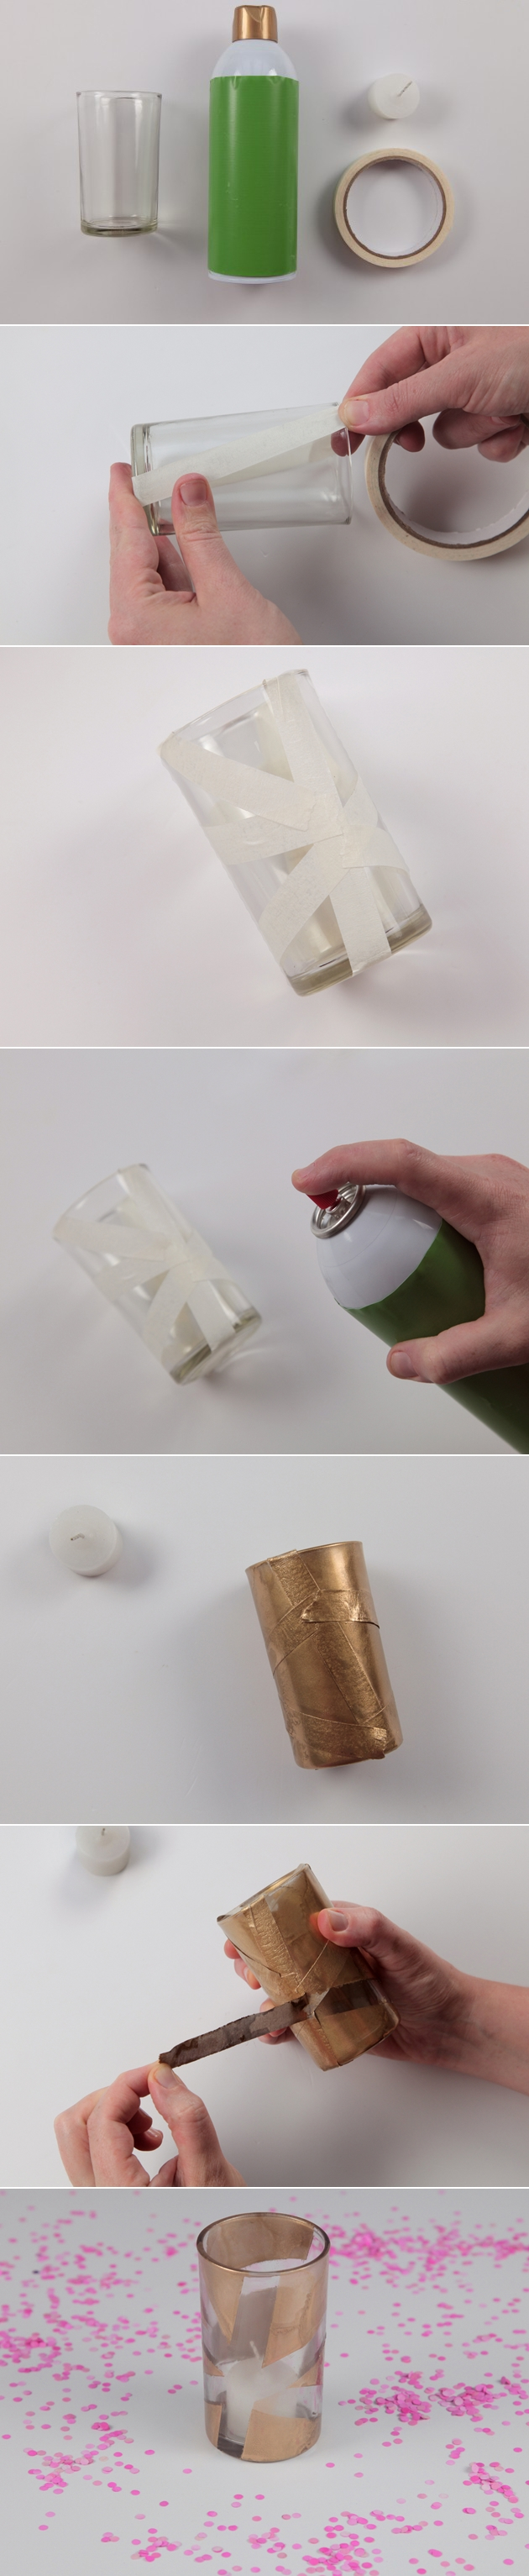 decorating-ideas glass candle holders tutorial-spray-paint-tape